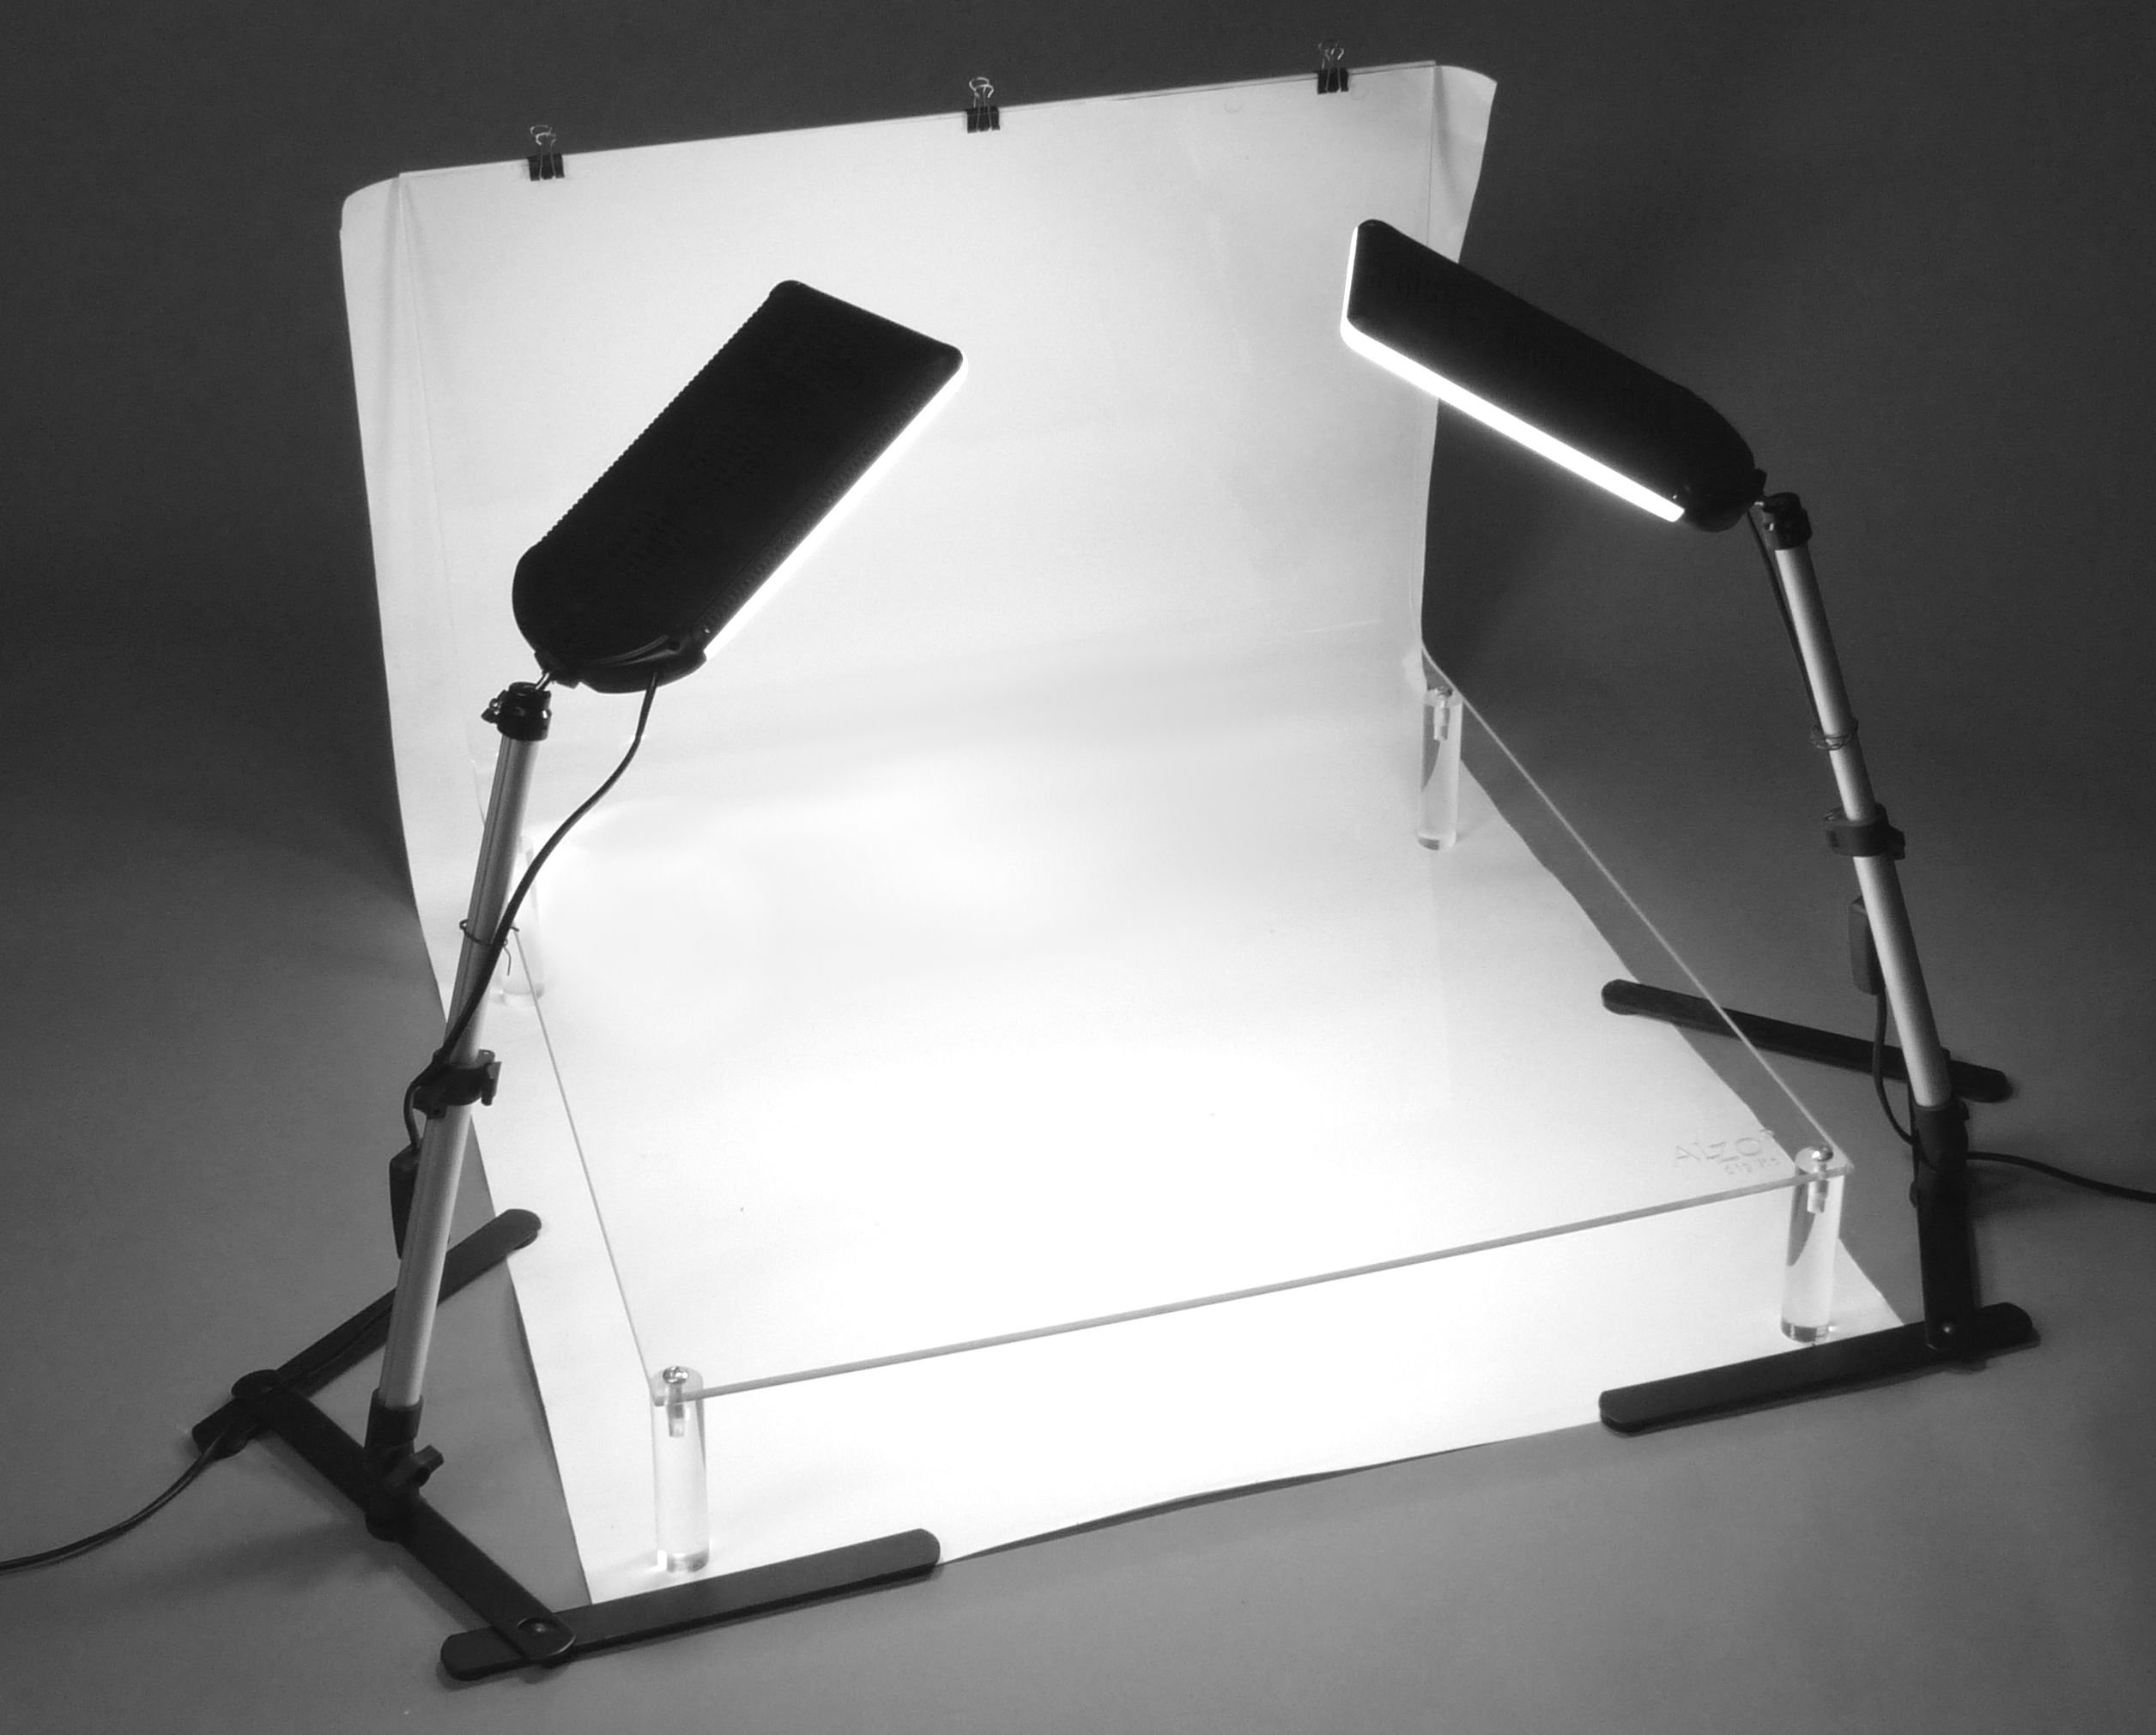 ALZO 100 LED Table Top Platform Light Kit - Shooting Table for Product Photography by ALZO Digital